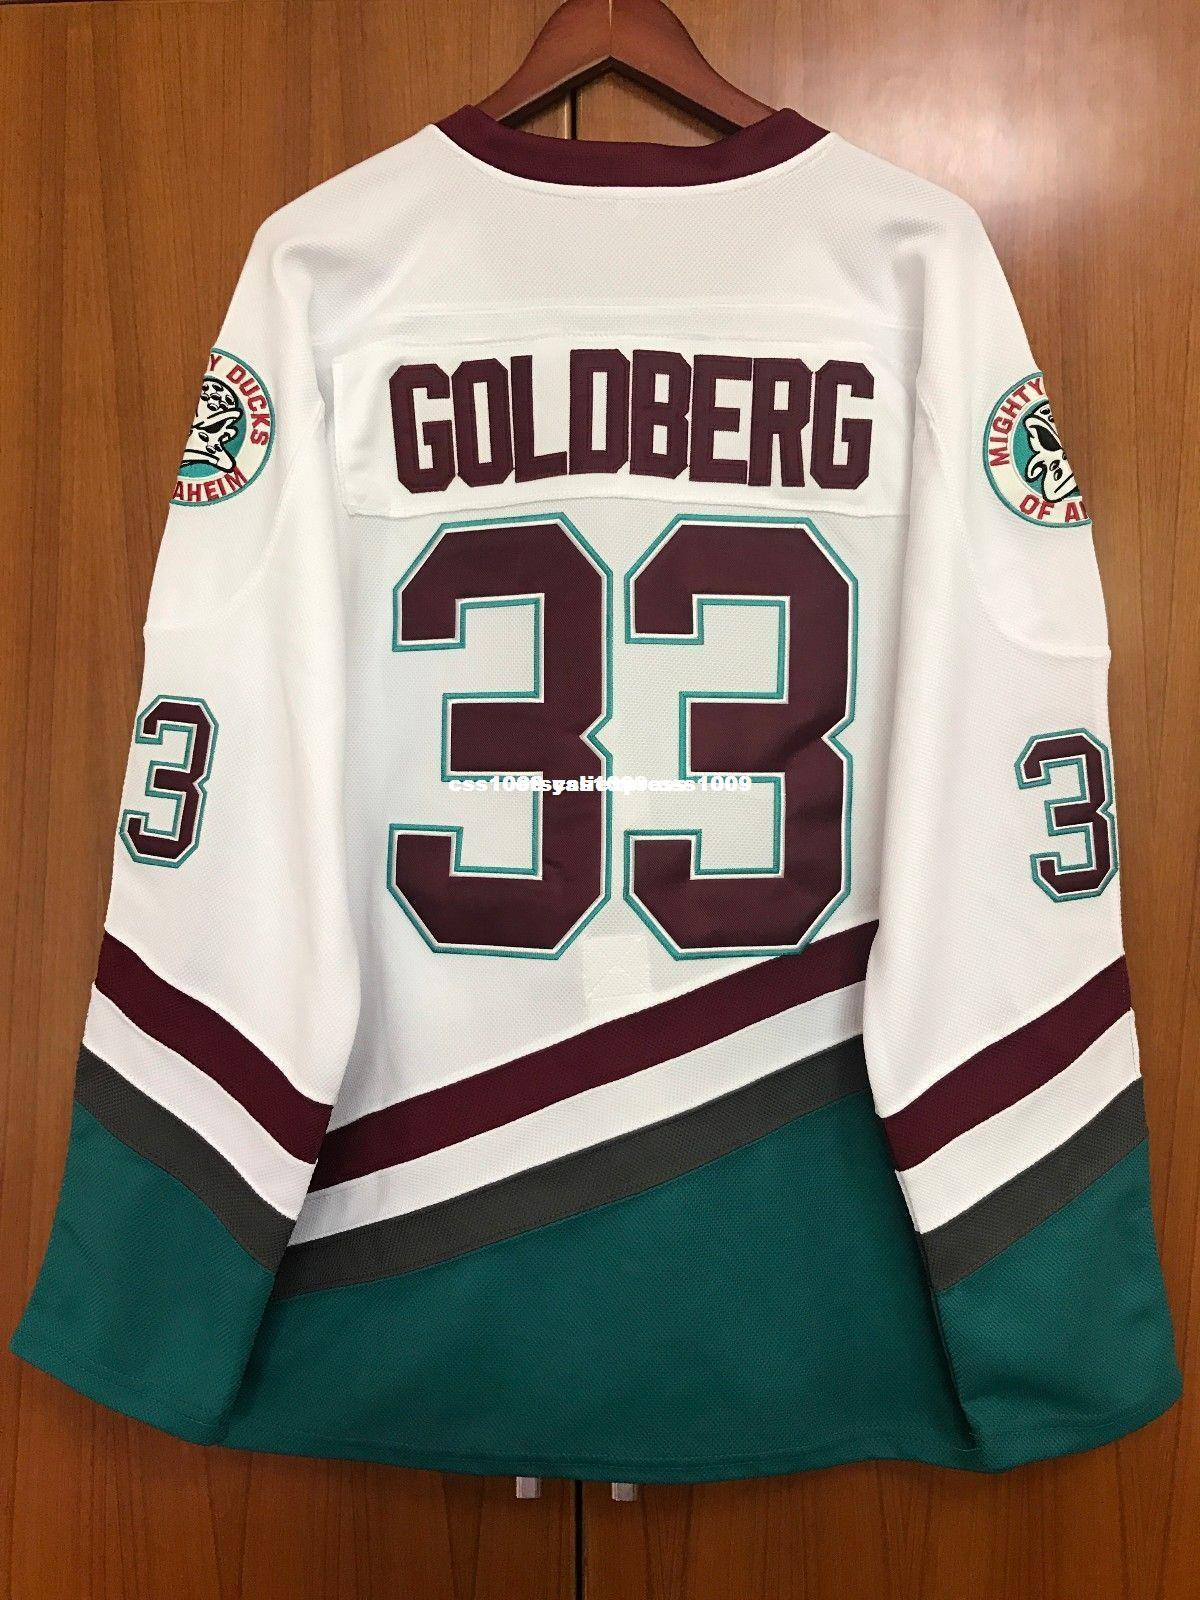 2019 Cheap Custom  33 Greg Goldberg Hockey Jersey The Mighty Ducks Movie  Jersey White Stitched Customize Any Number Name MEN WOMEN YOUTH XS 6XL From  ... 66492fd9eda